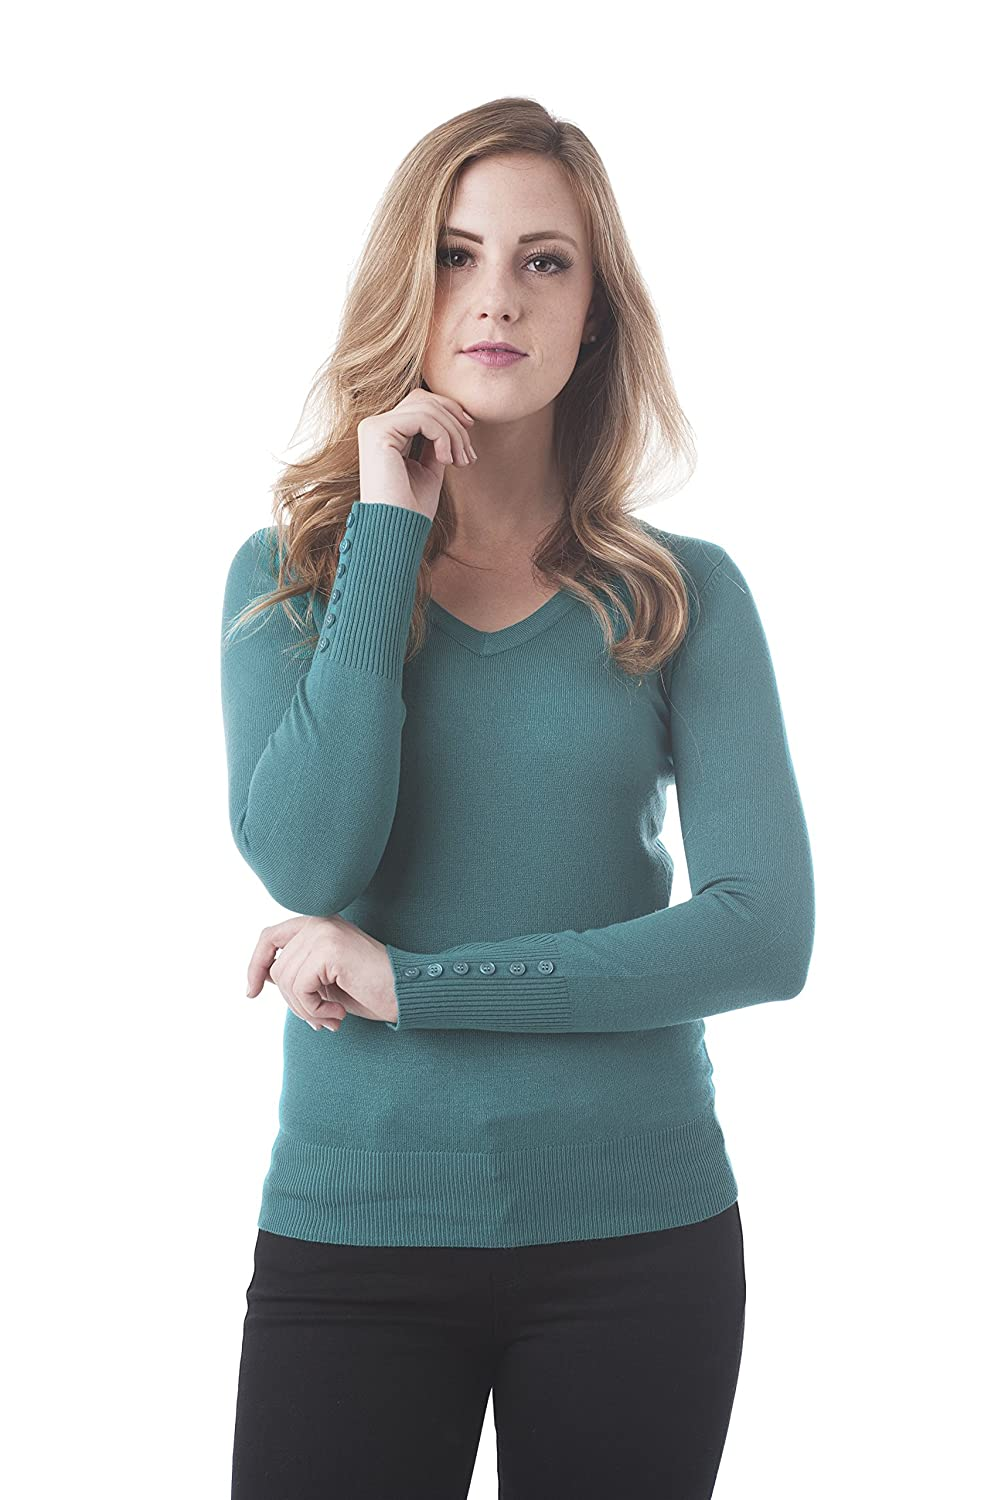 Women s Long Sleeves V Neck Knit Sweater Top with Buttons at Amazon Women s  Clothing store  518ee12f7